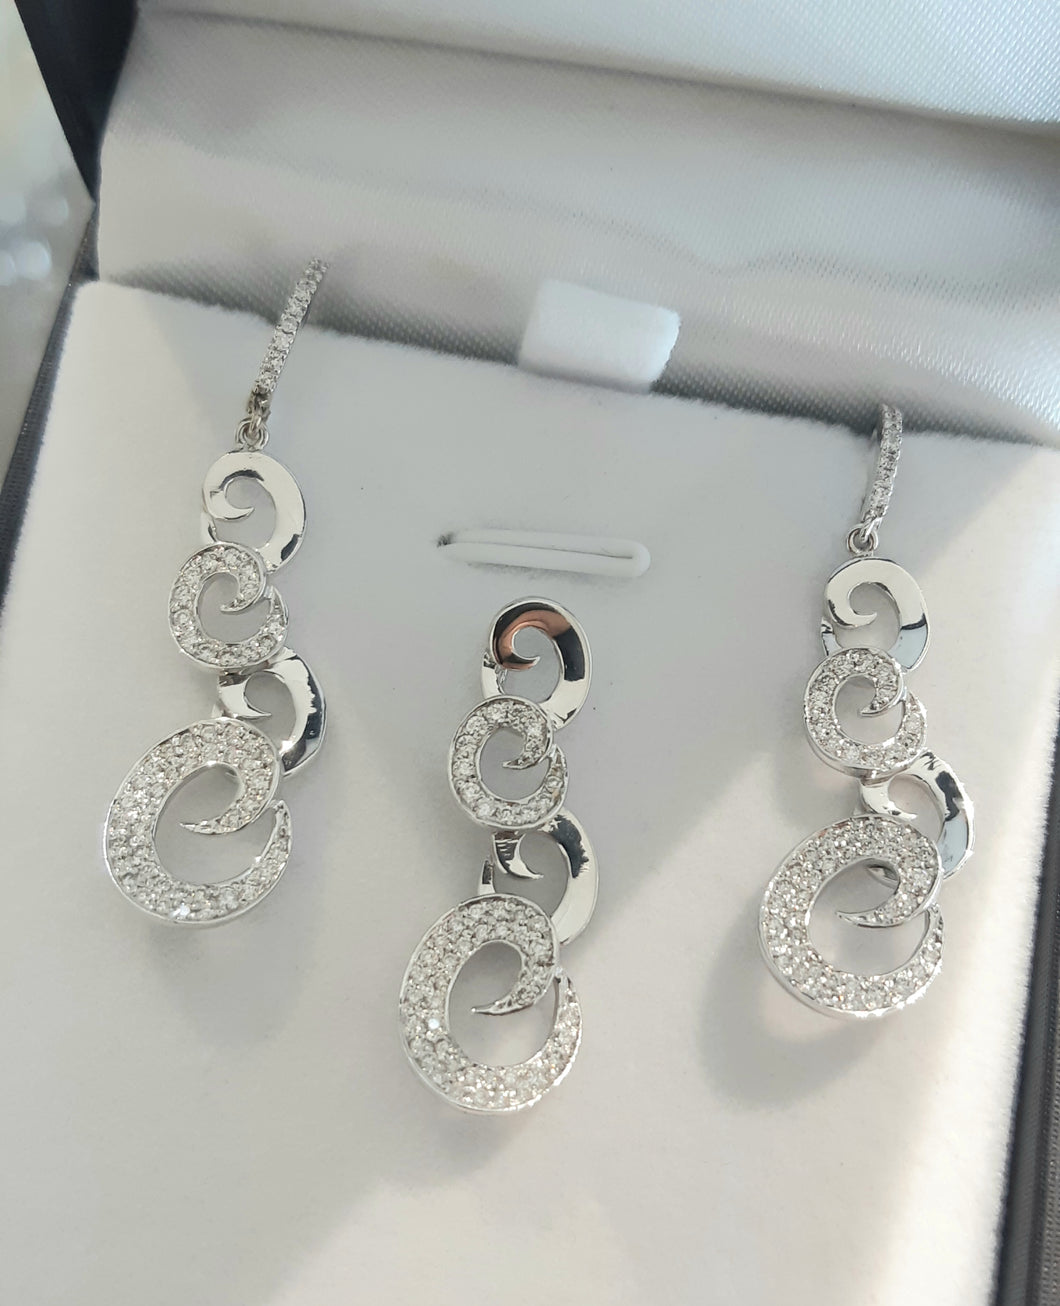 1.40cts [162] Round Brilliant Cut Diamonds | Swirl Pendant and Earring Set |